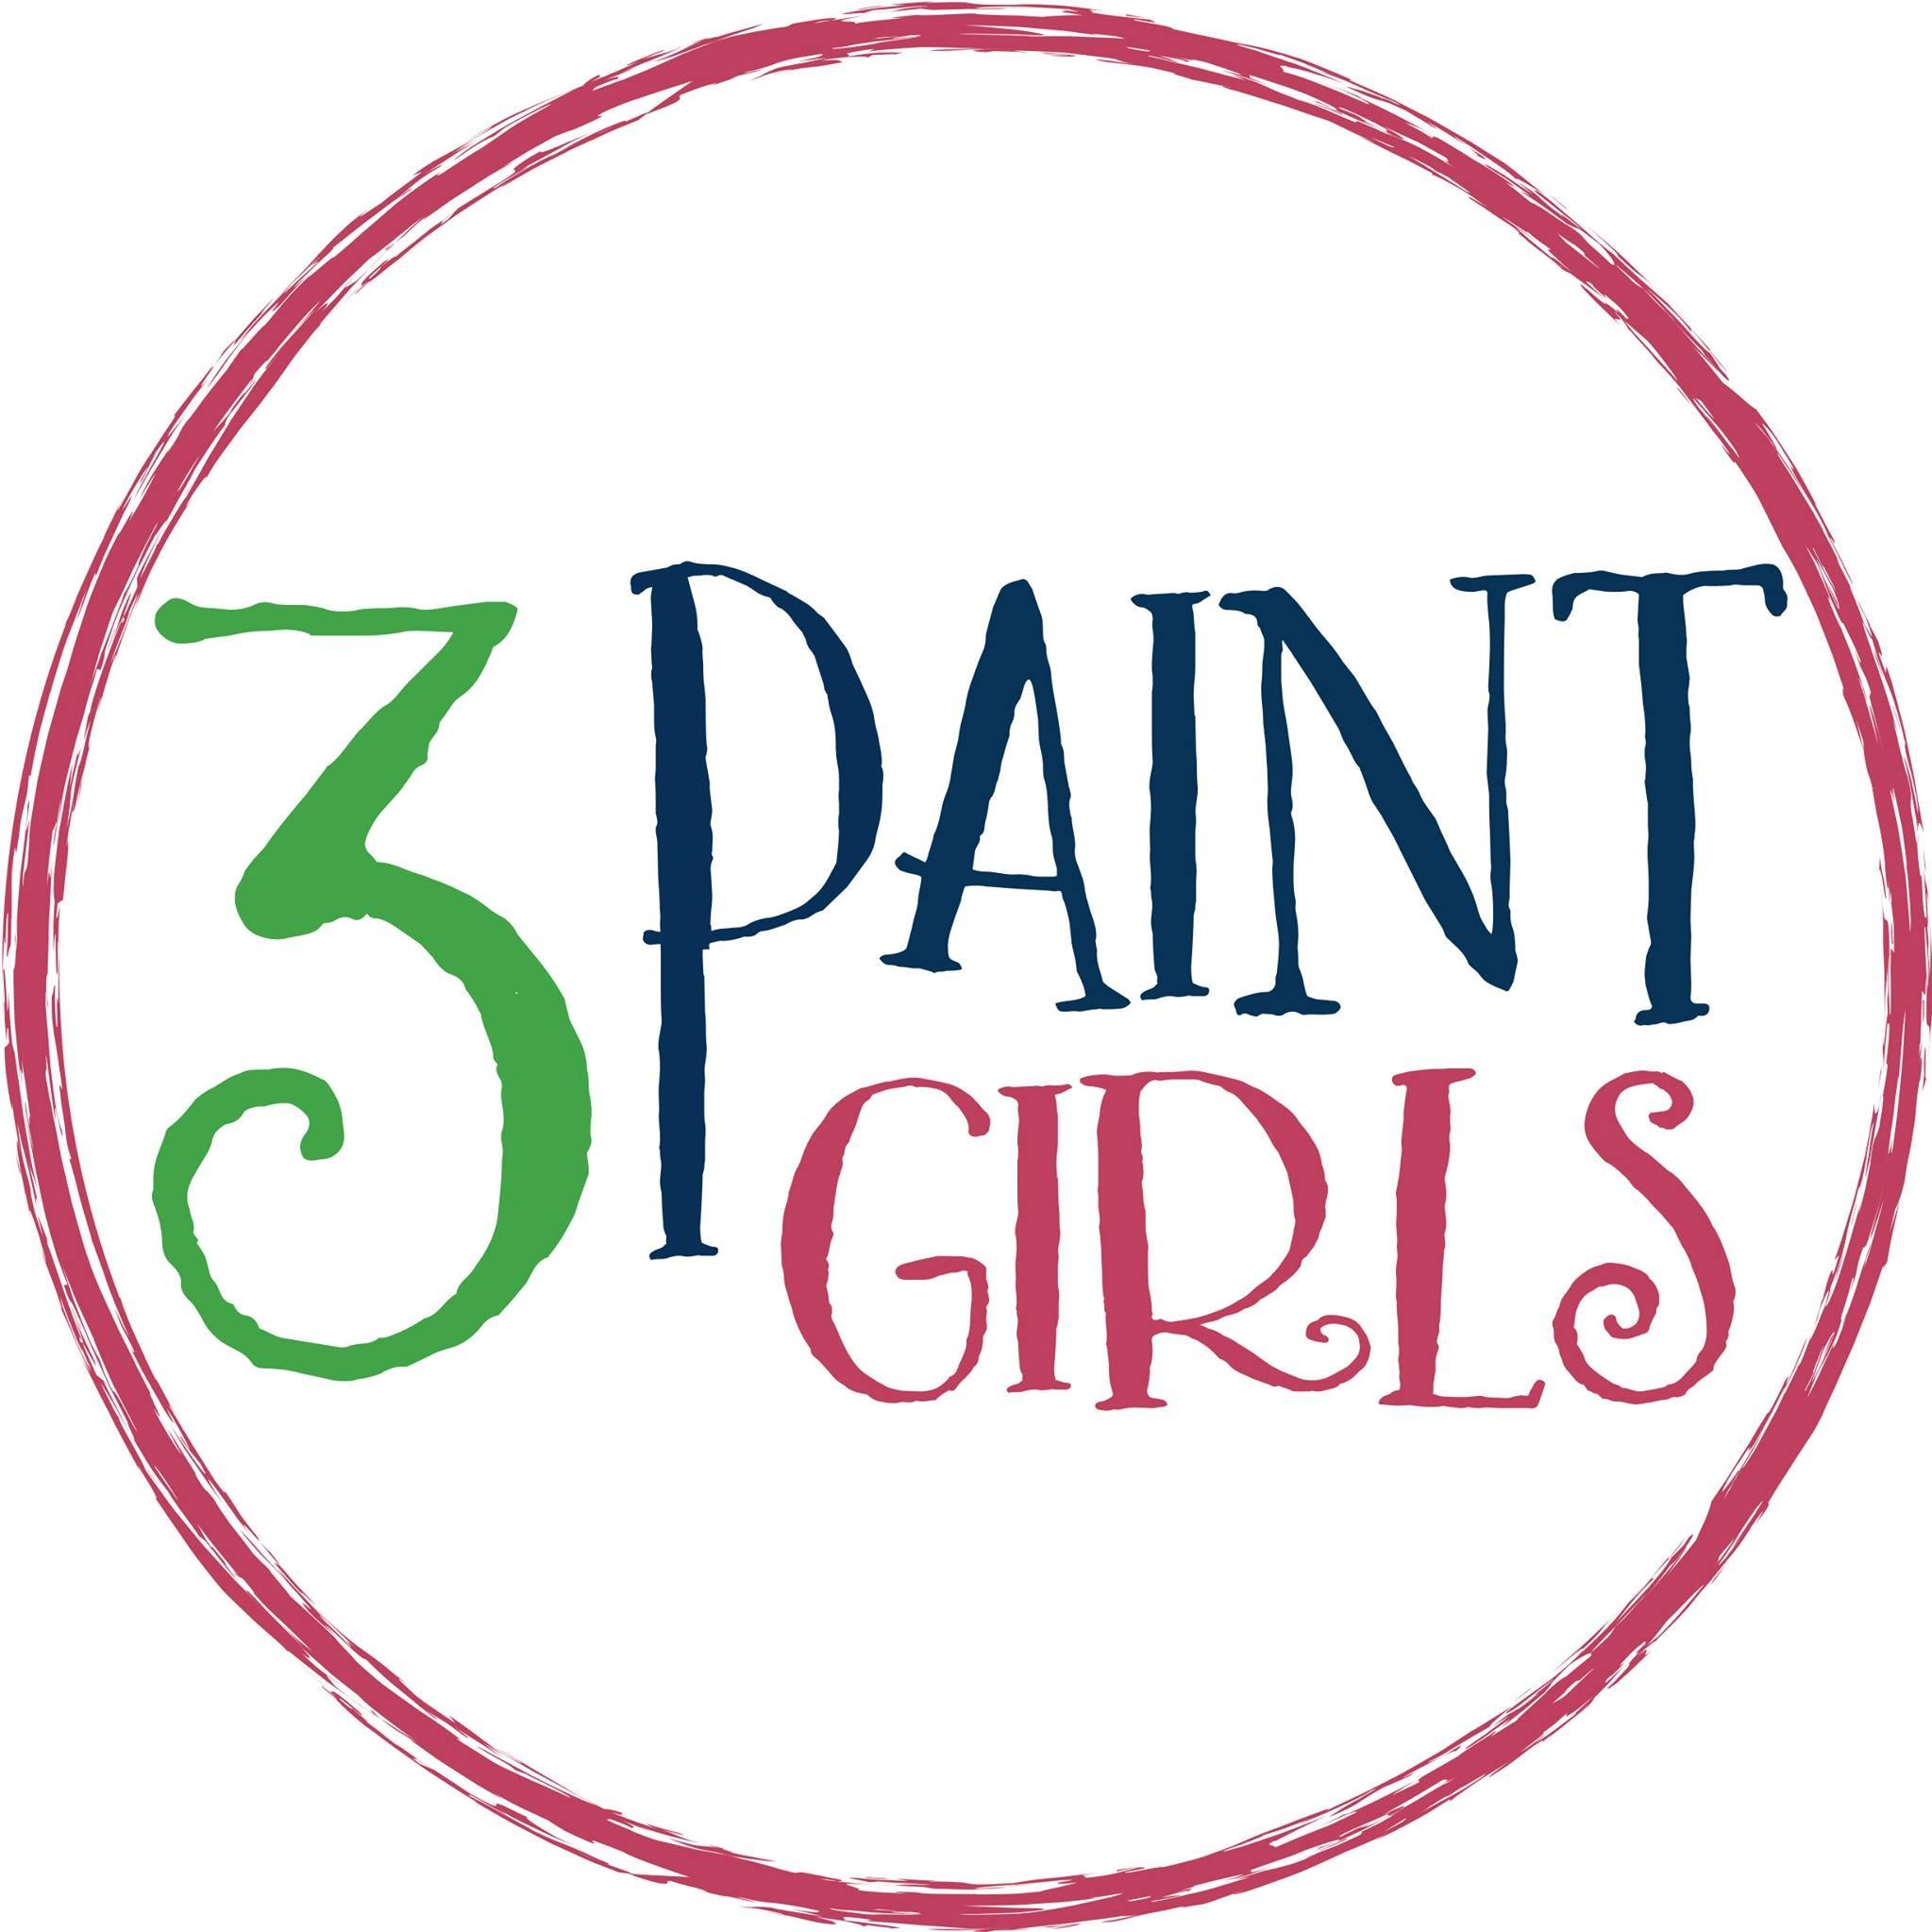 3 Paint Girls